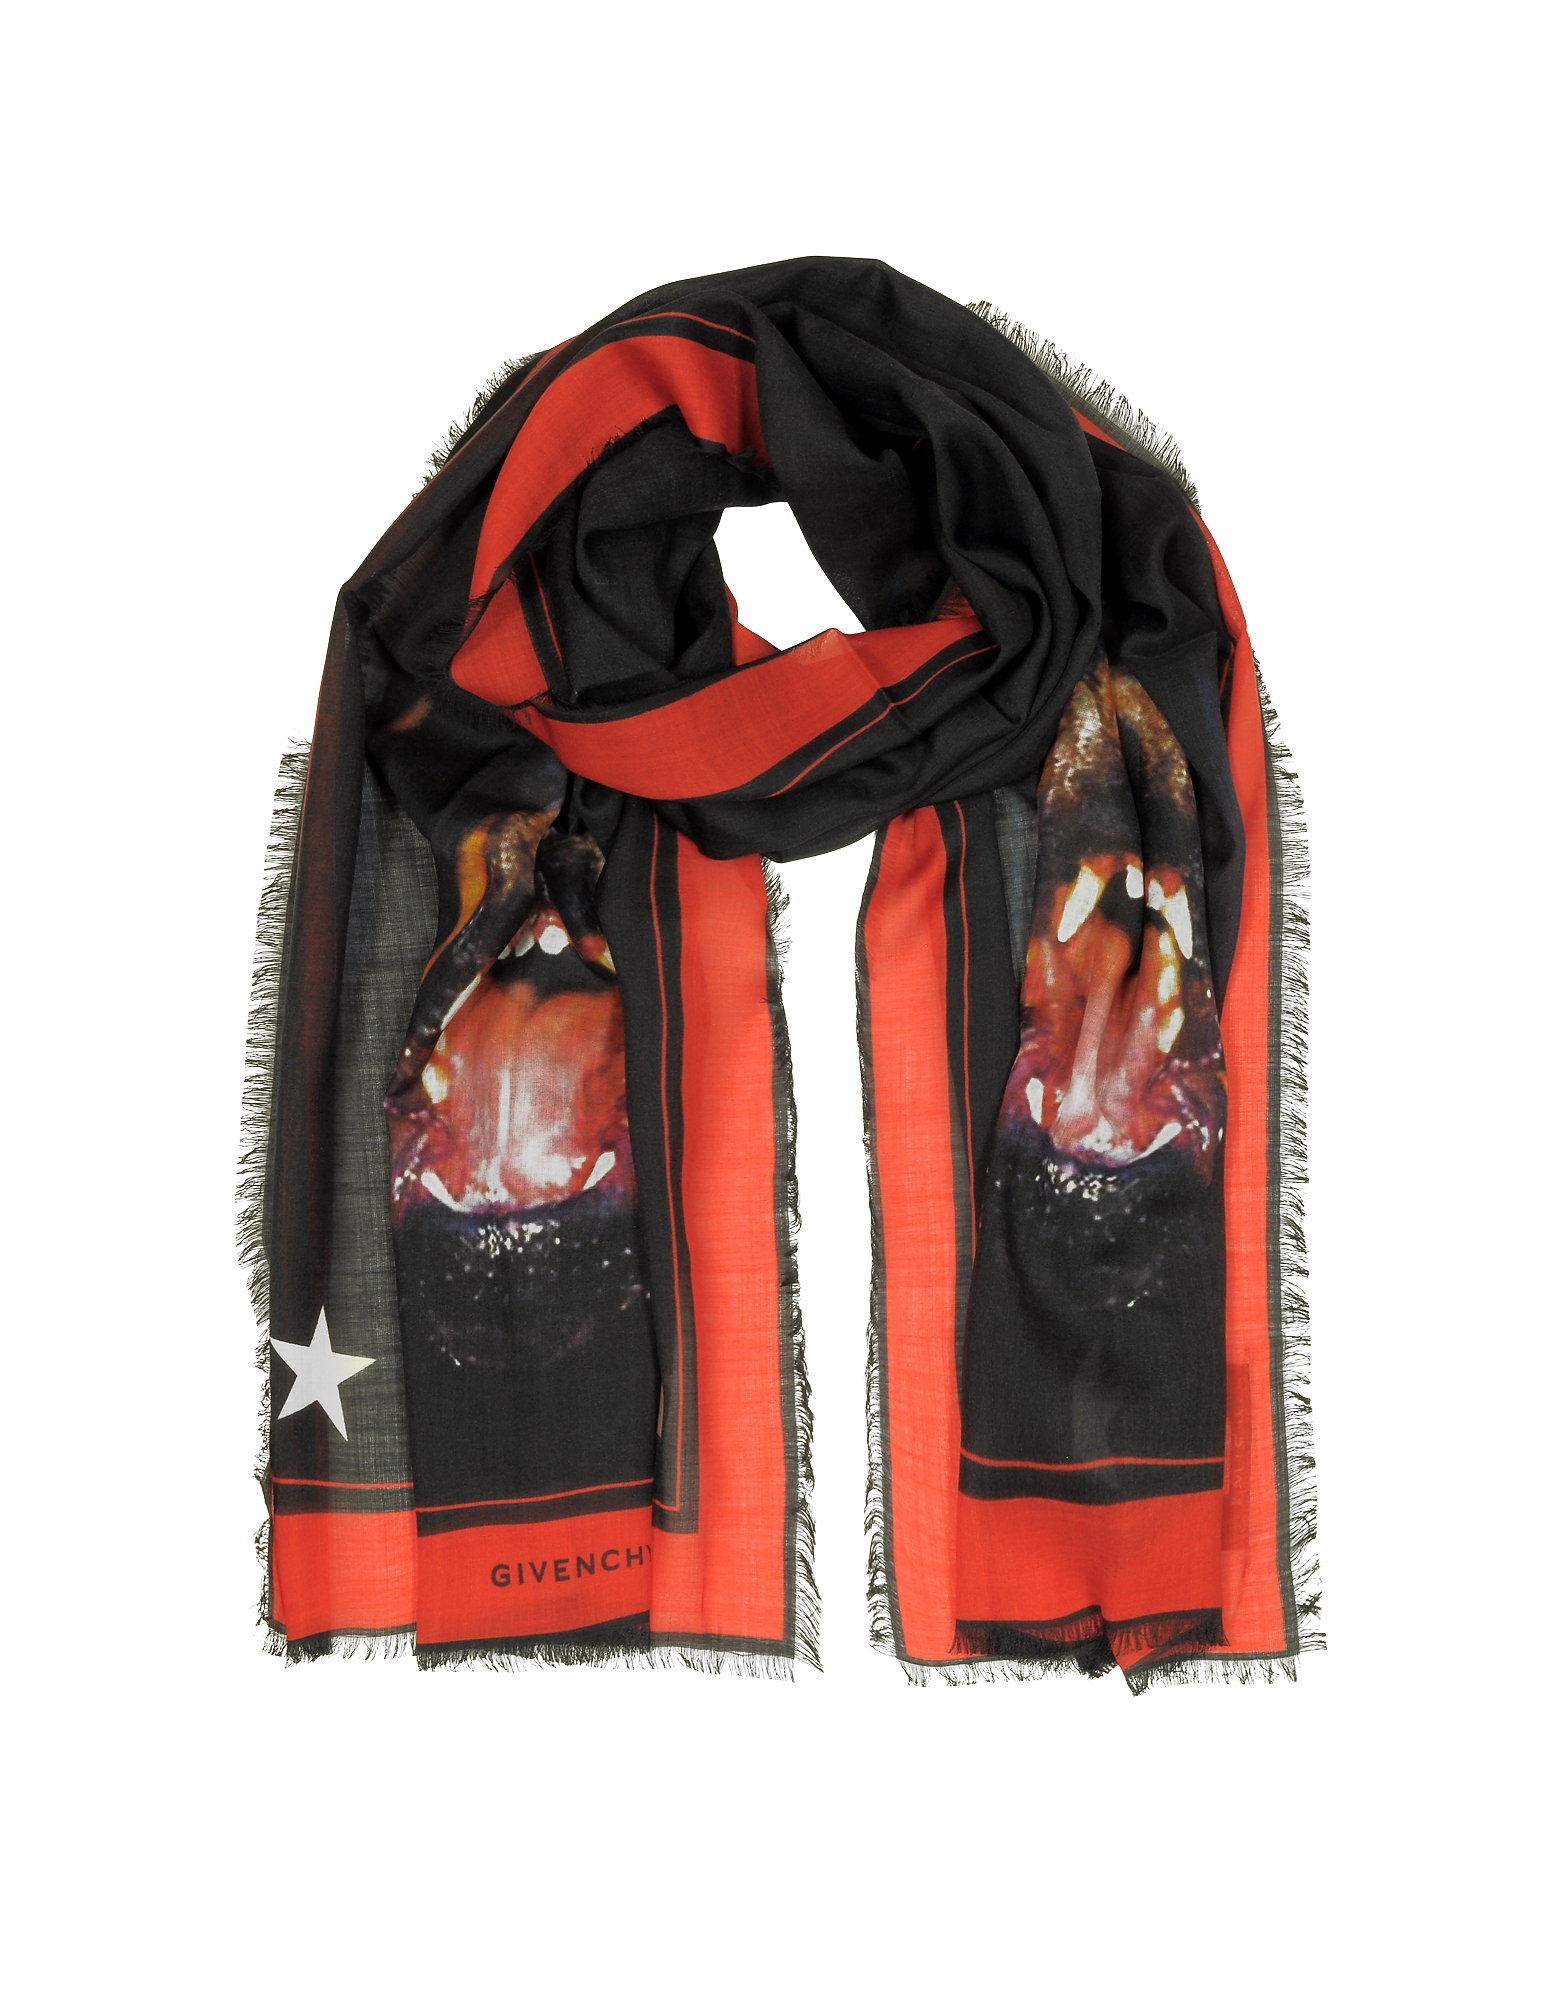 Givenchy Long Scarves, Rottweiler Printed Cashmere and Silk Stole